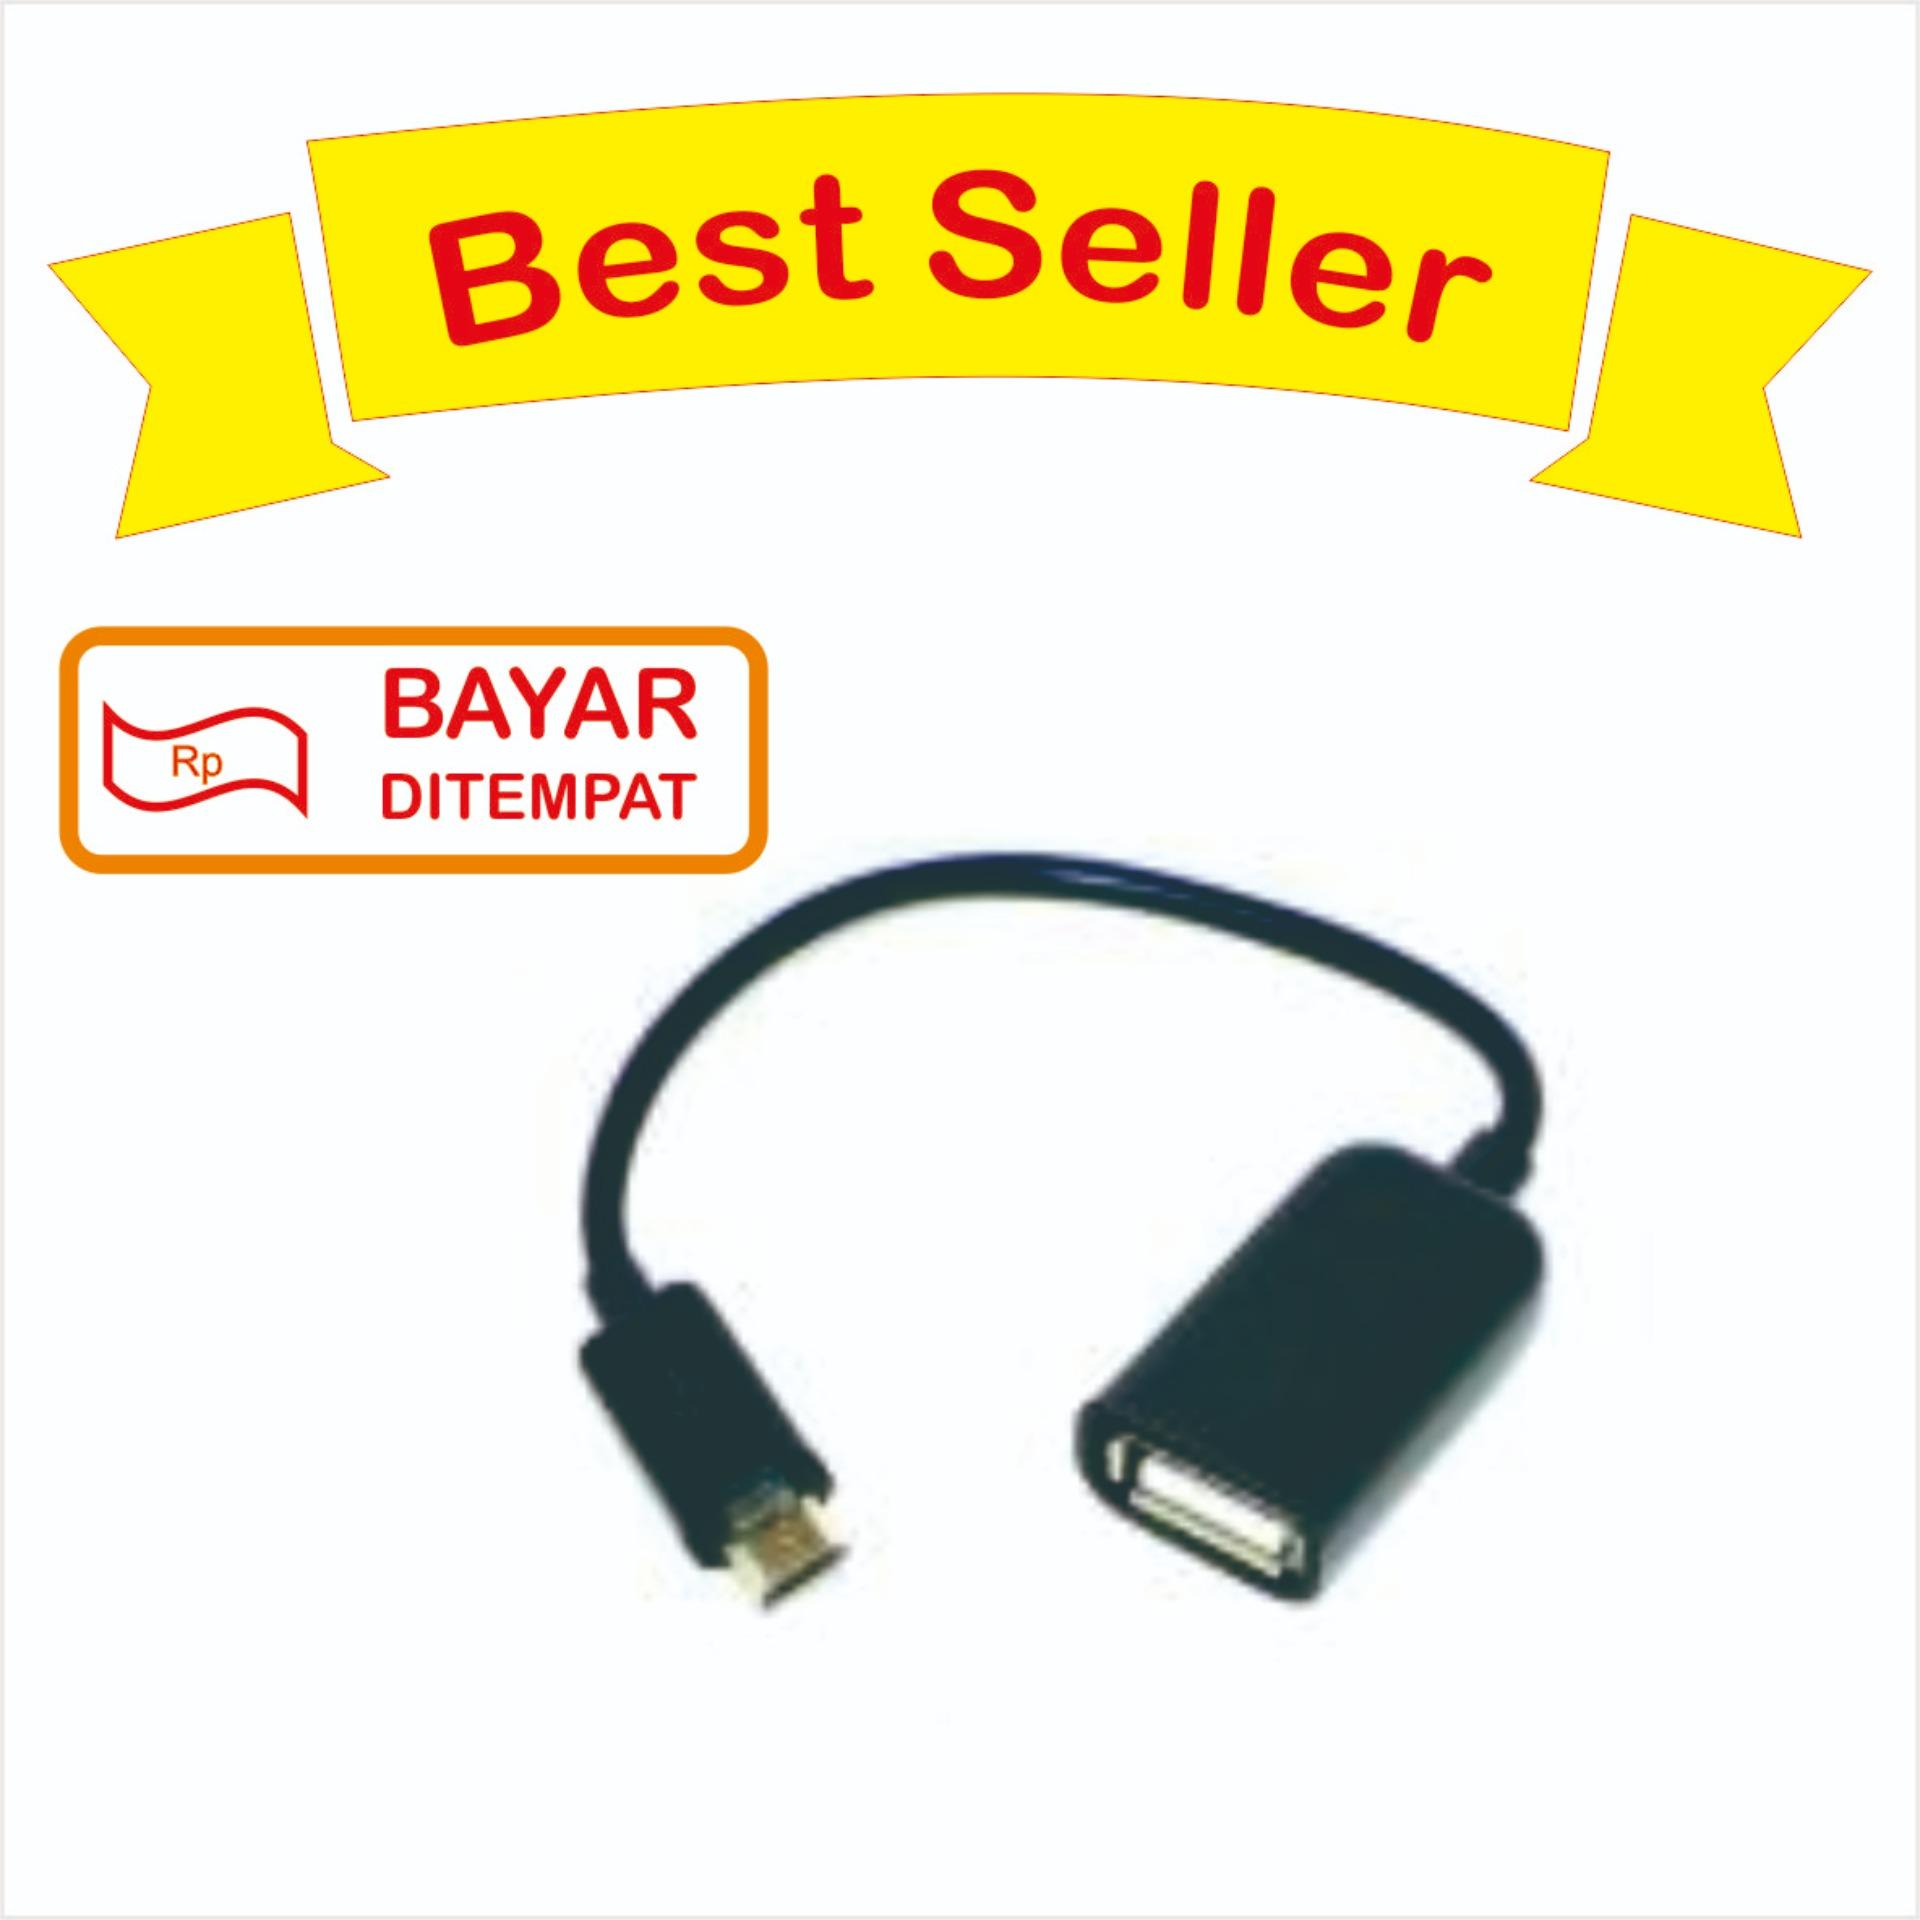 OTG USB 2.0 A Female to Micro USB Male Charger Converter Adapter Cable for Phone